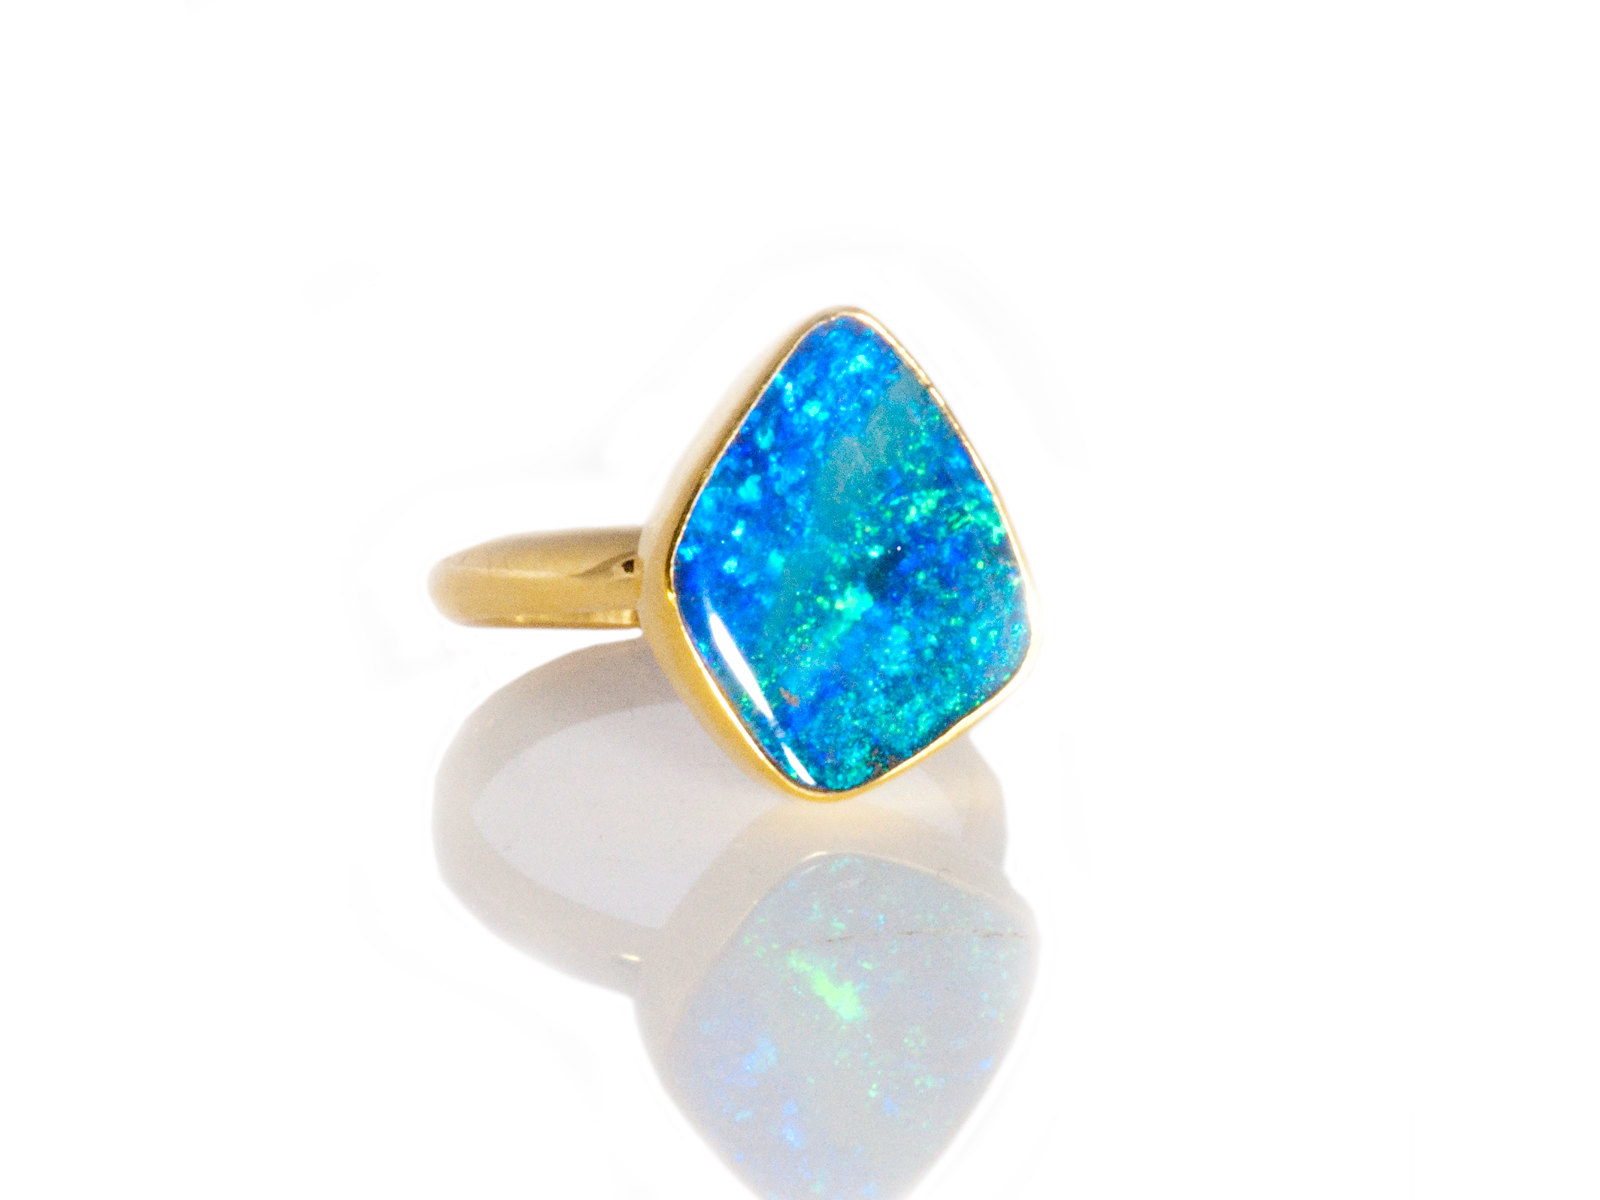 find opal crystal ring deals cheap get on fire women quotations cz orange shopping engagement fashion jewelry guides rings silver boulder